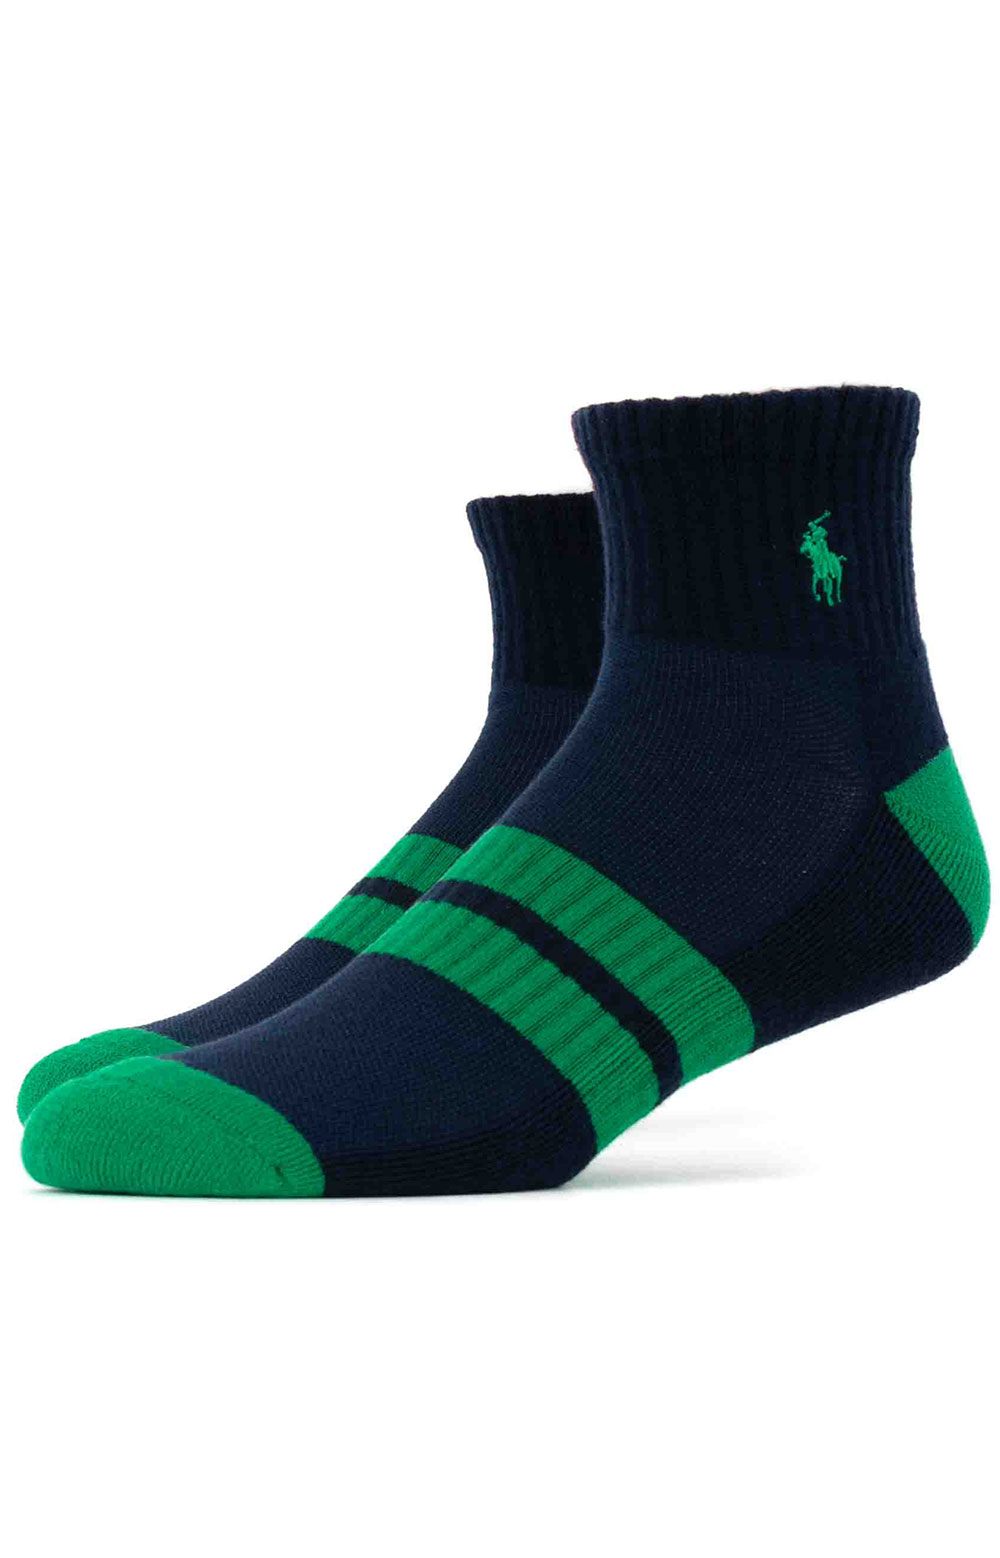 Colorblock Cushioned Quarter Socks - 6 Pack 10